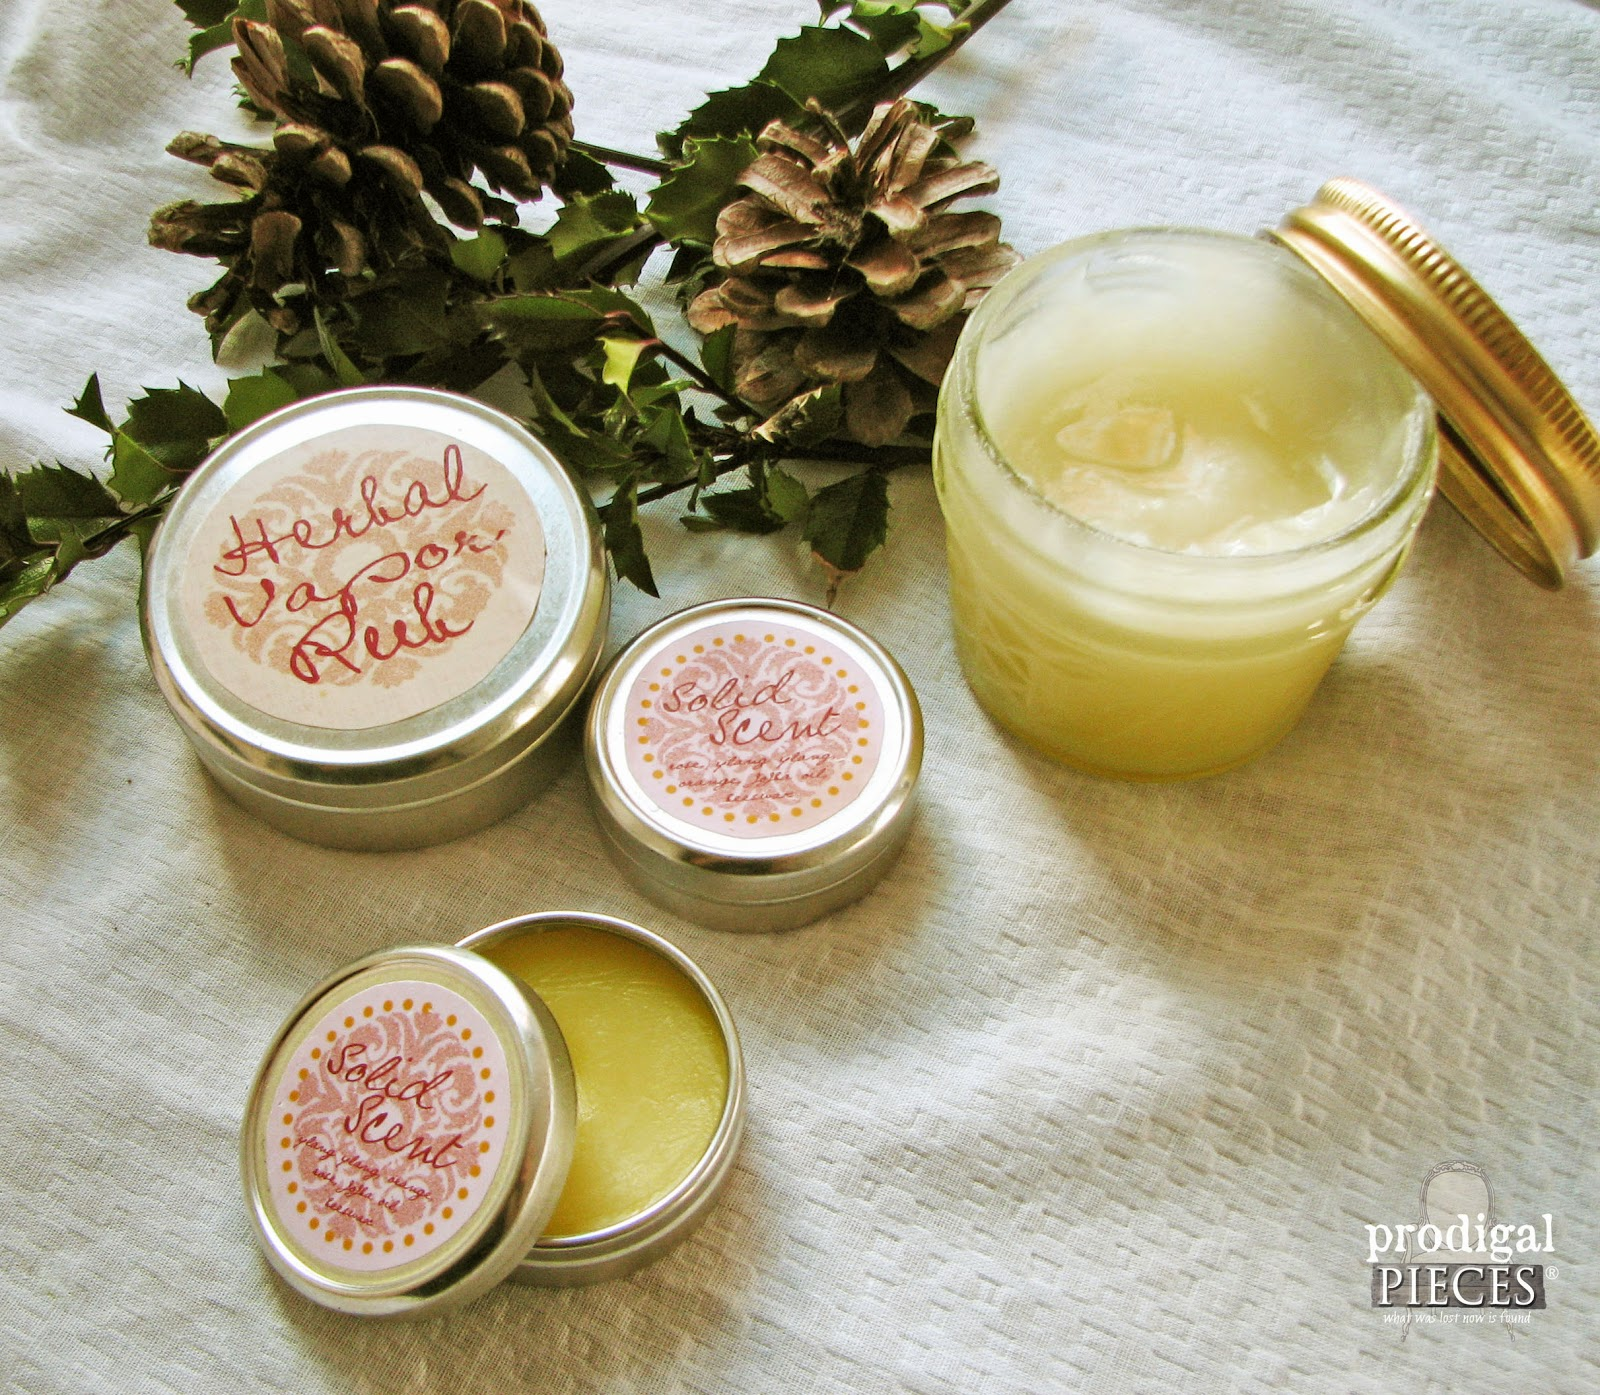 Handmade Holidays: Gift Ideas & Resources - Natural Bath & Body by Prodigal Pieces www.prodigalpieces.com